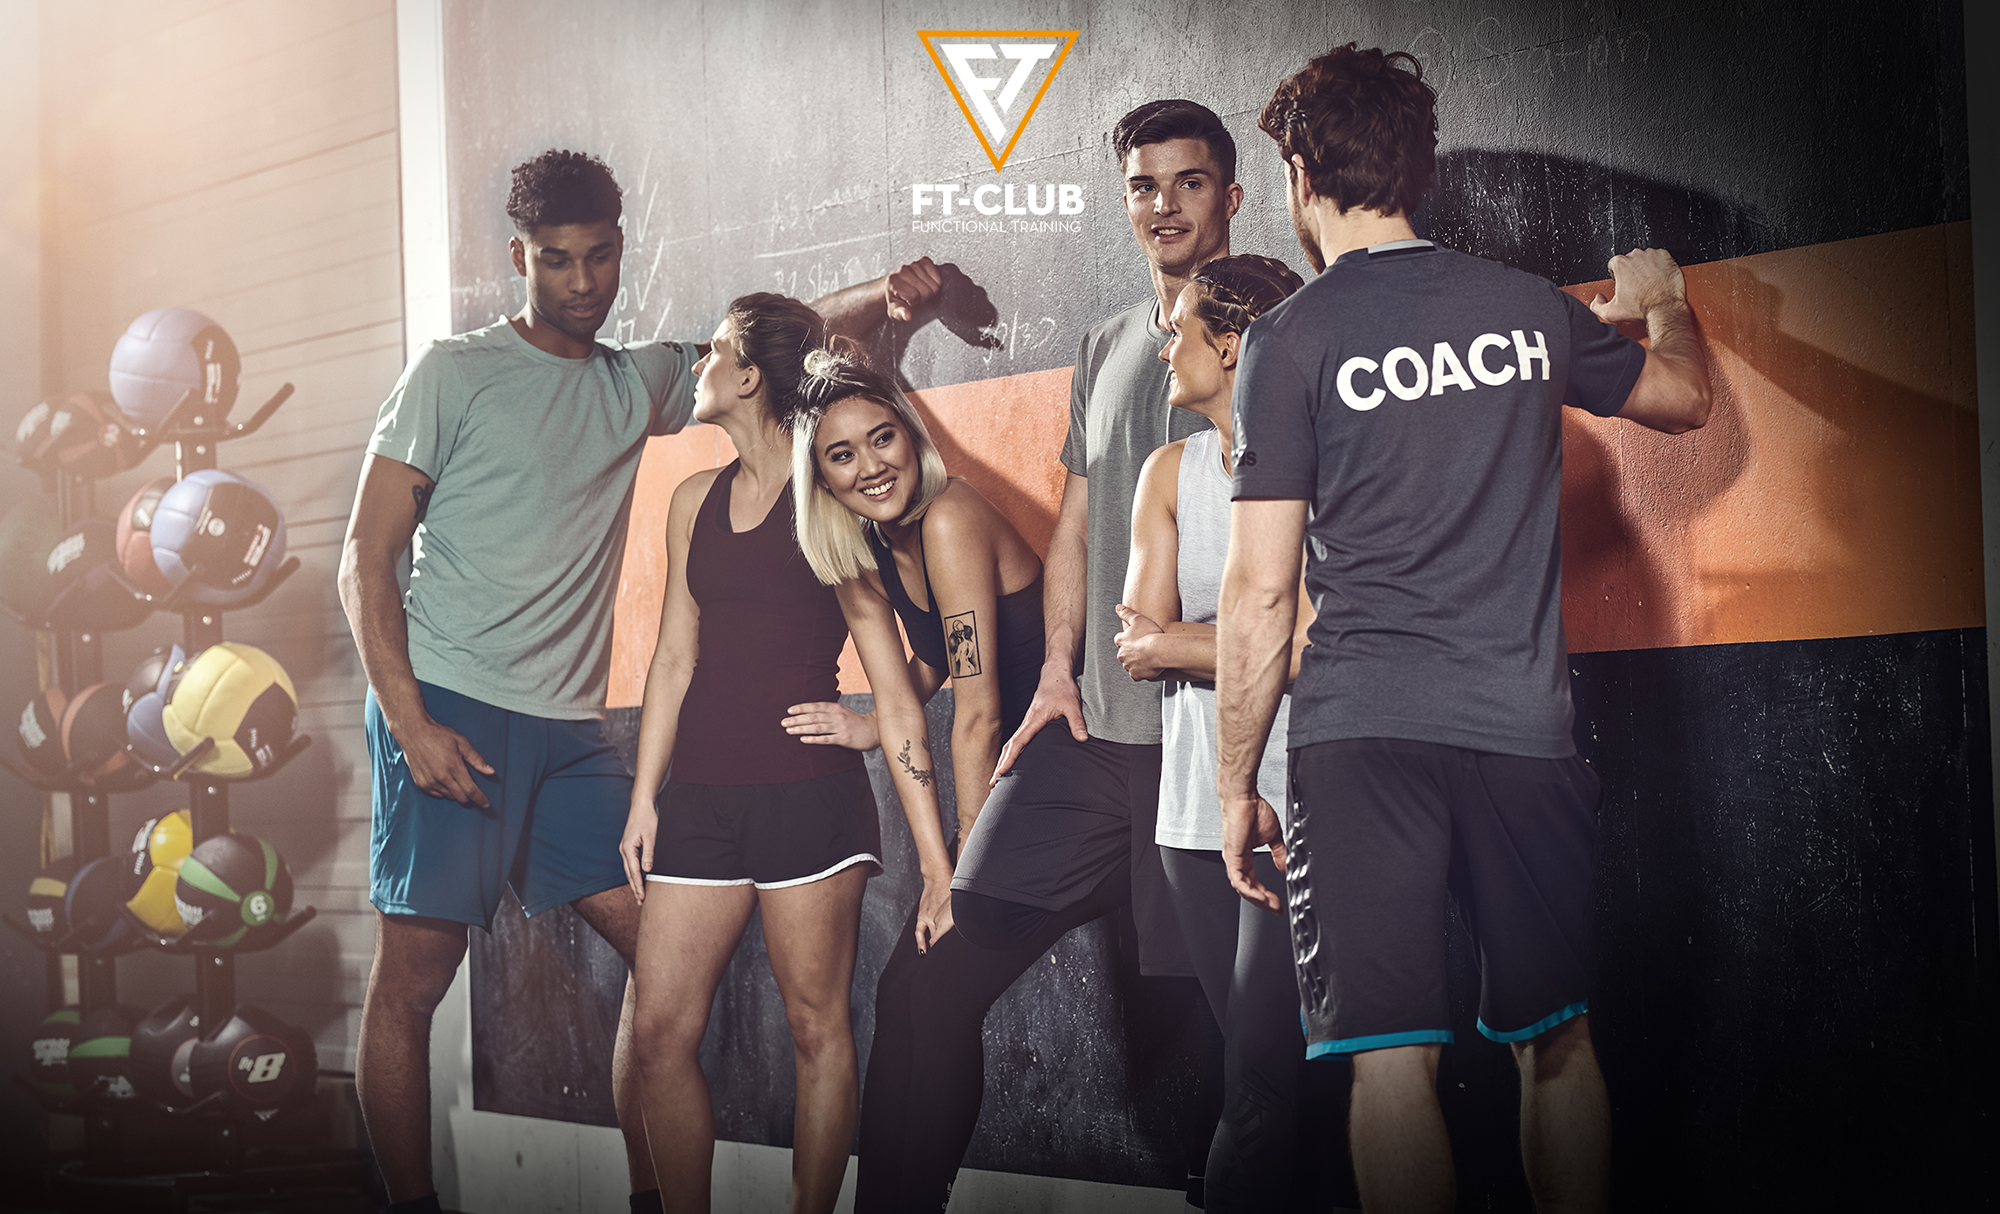 Der FT Club | Functional Training in Hannover